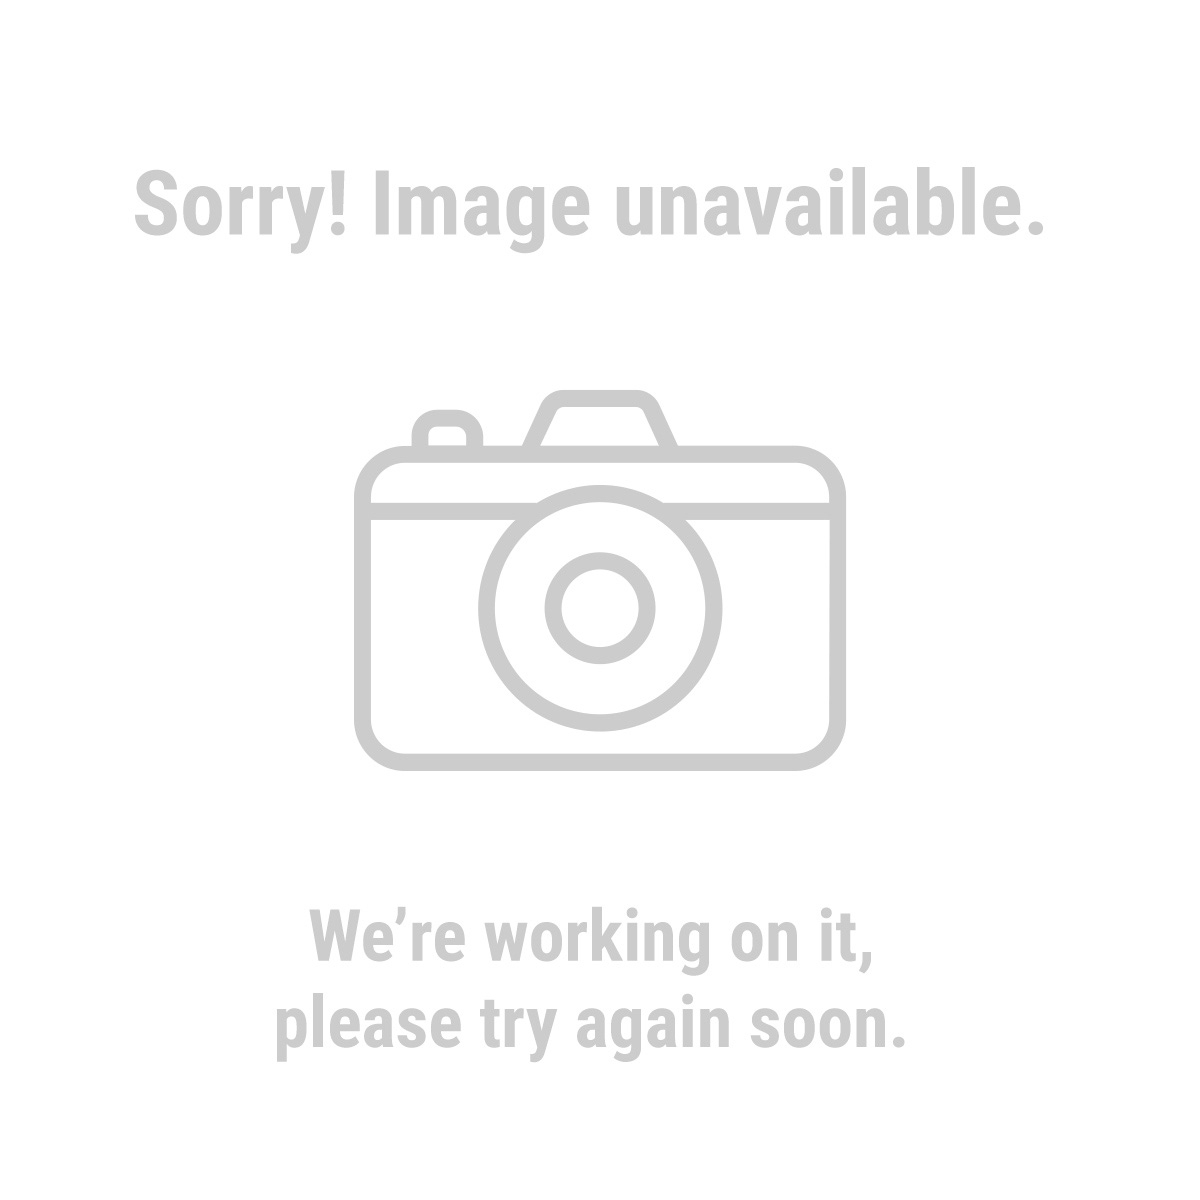 Pacific Hydrostar 68372 200 GPH Miniature Submersible Fountain Pump